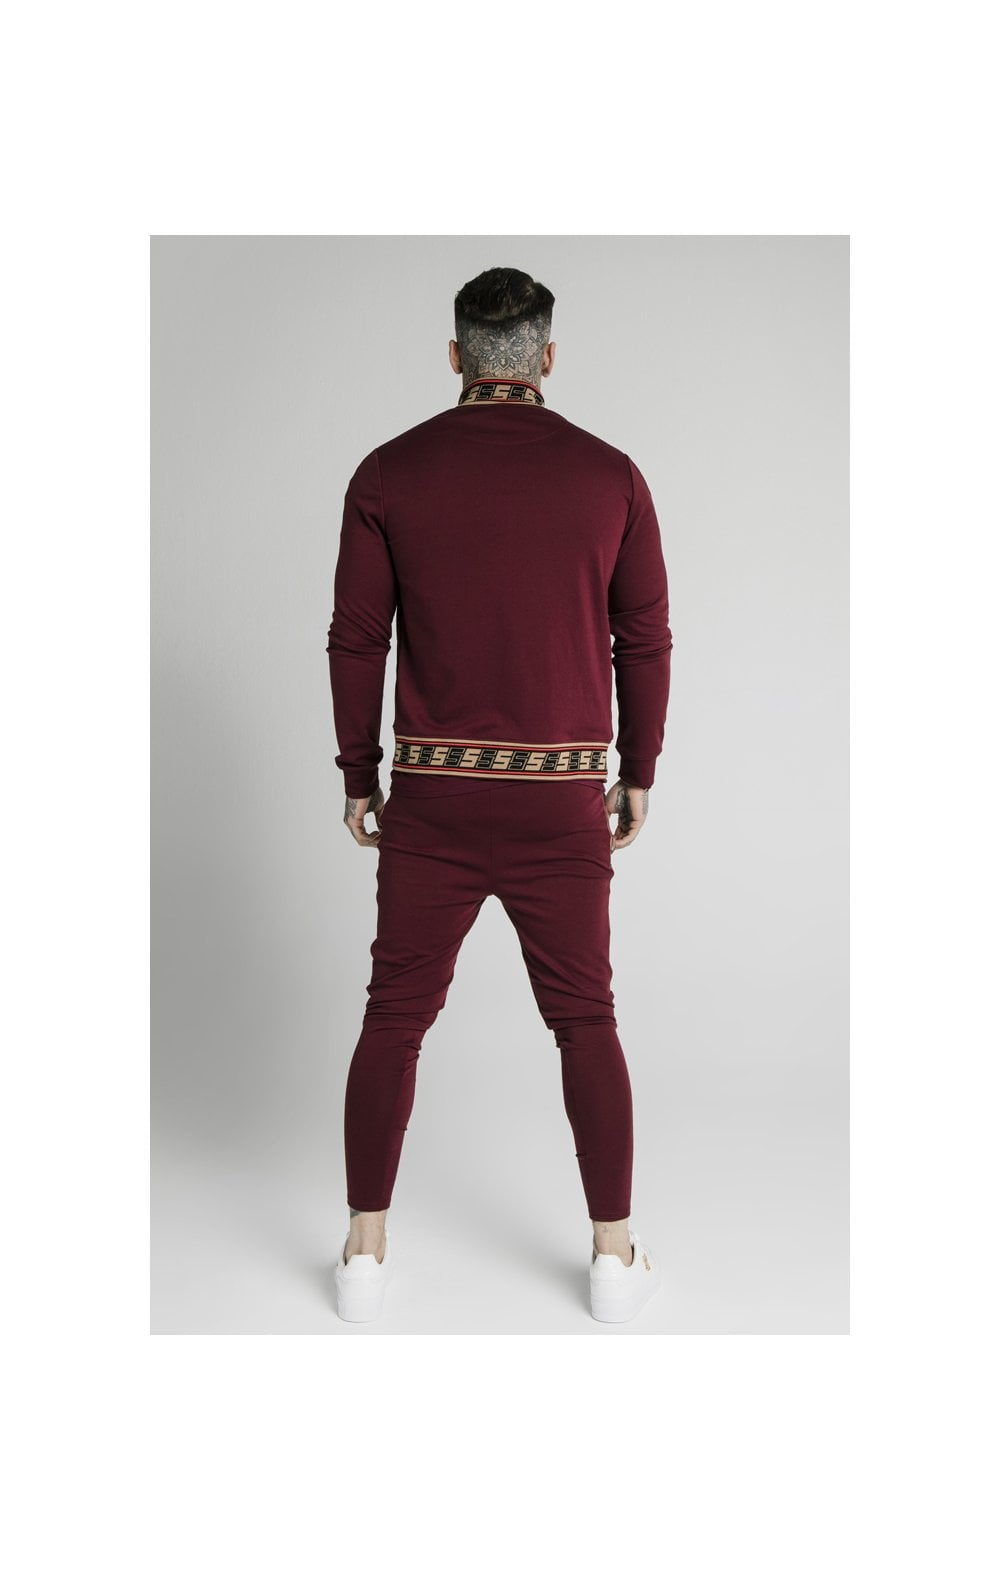 Load image into Gallery viewer, SikSilk Jacquard Retro Zip Through - Burgundy (5)